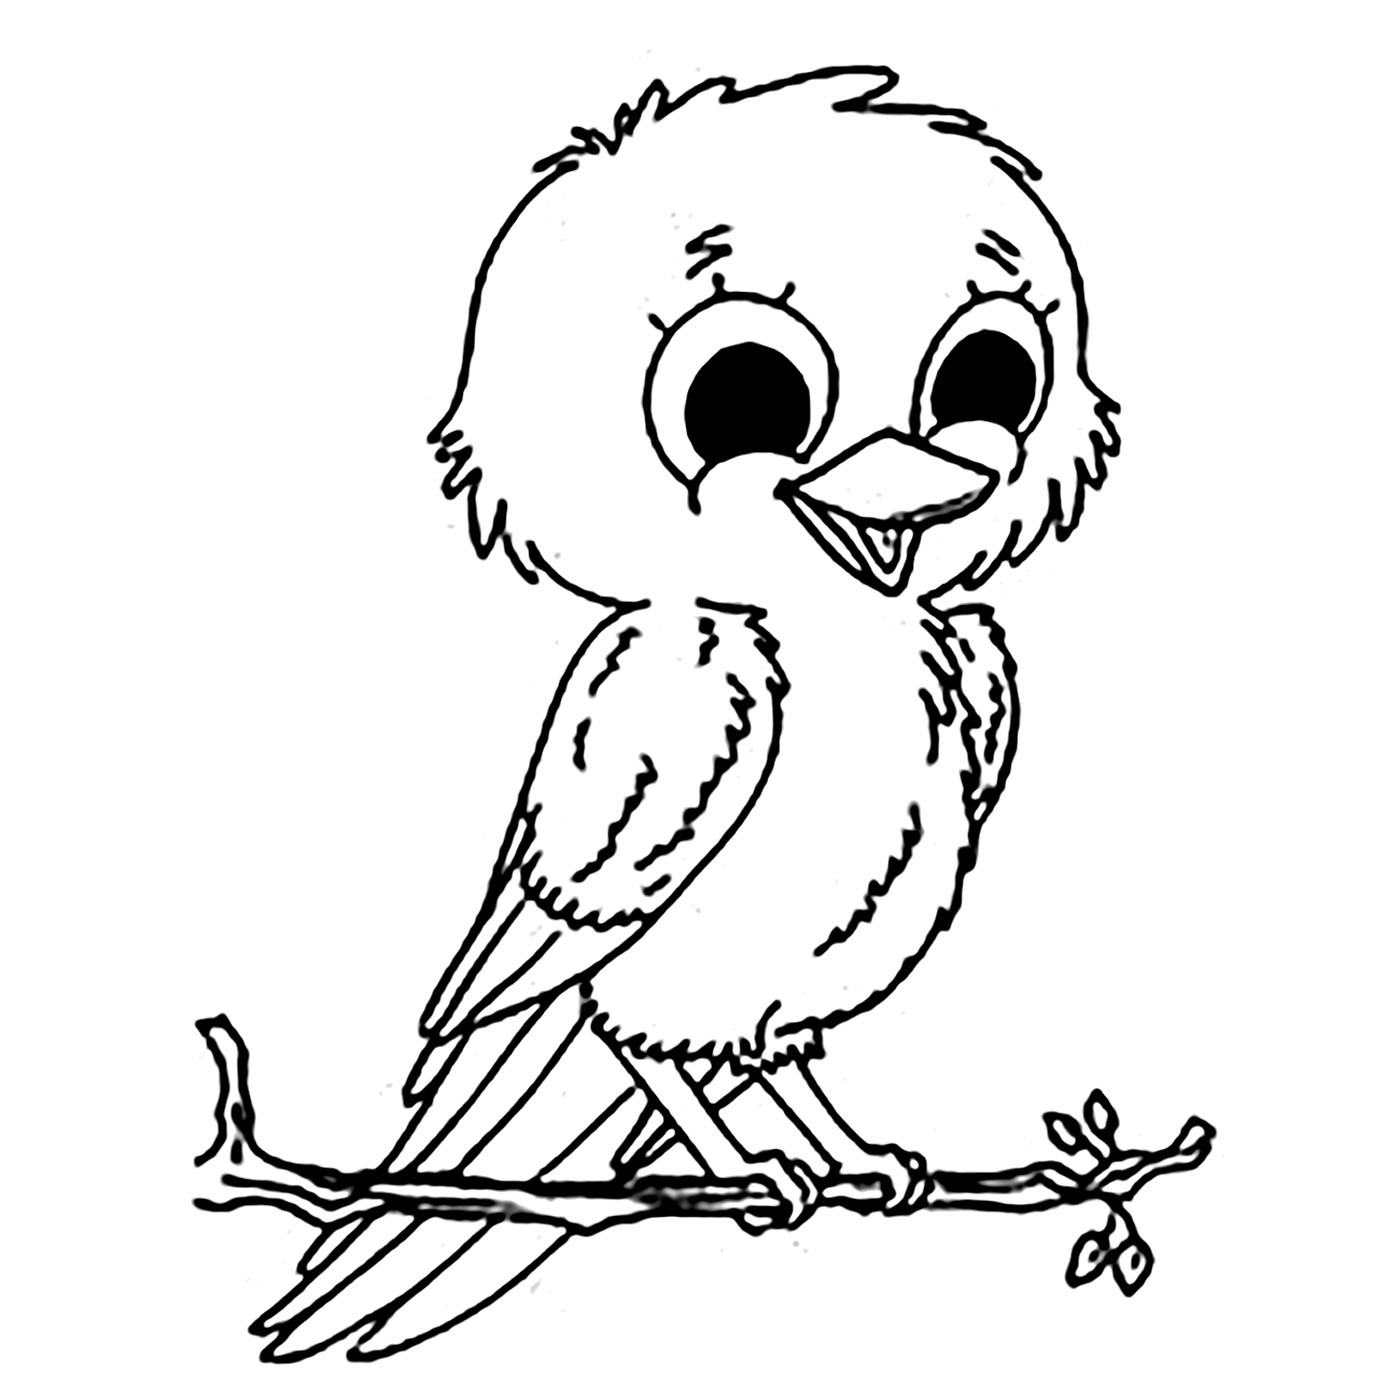 bird colouring pictures bird coloring pages pictures colouring bird 1 2